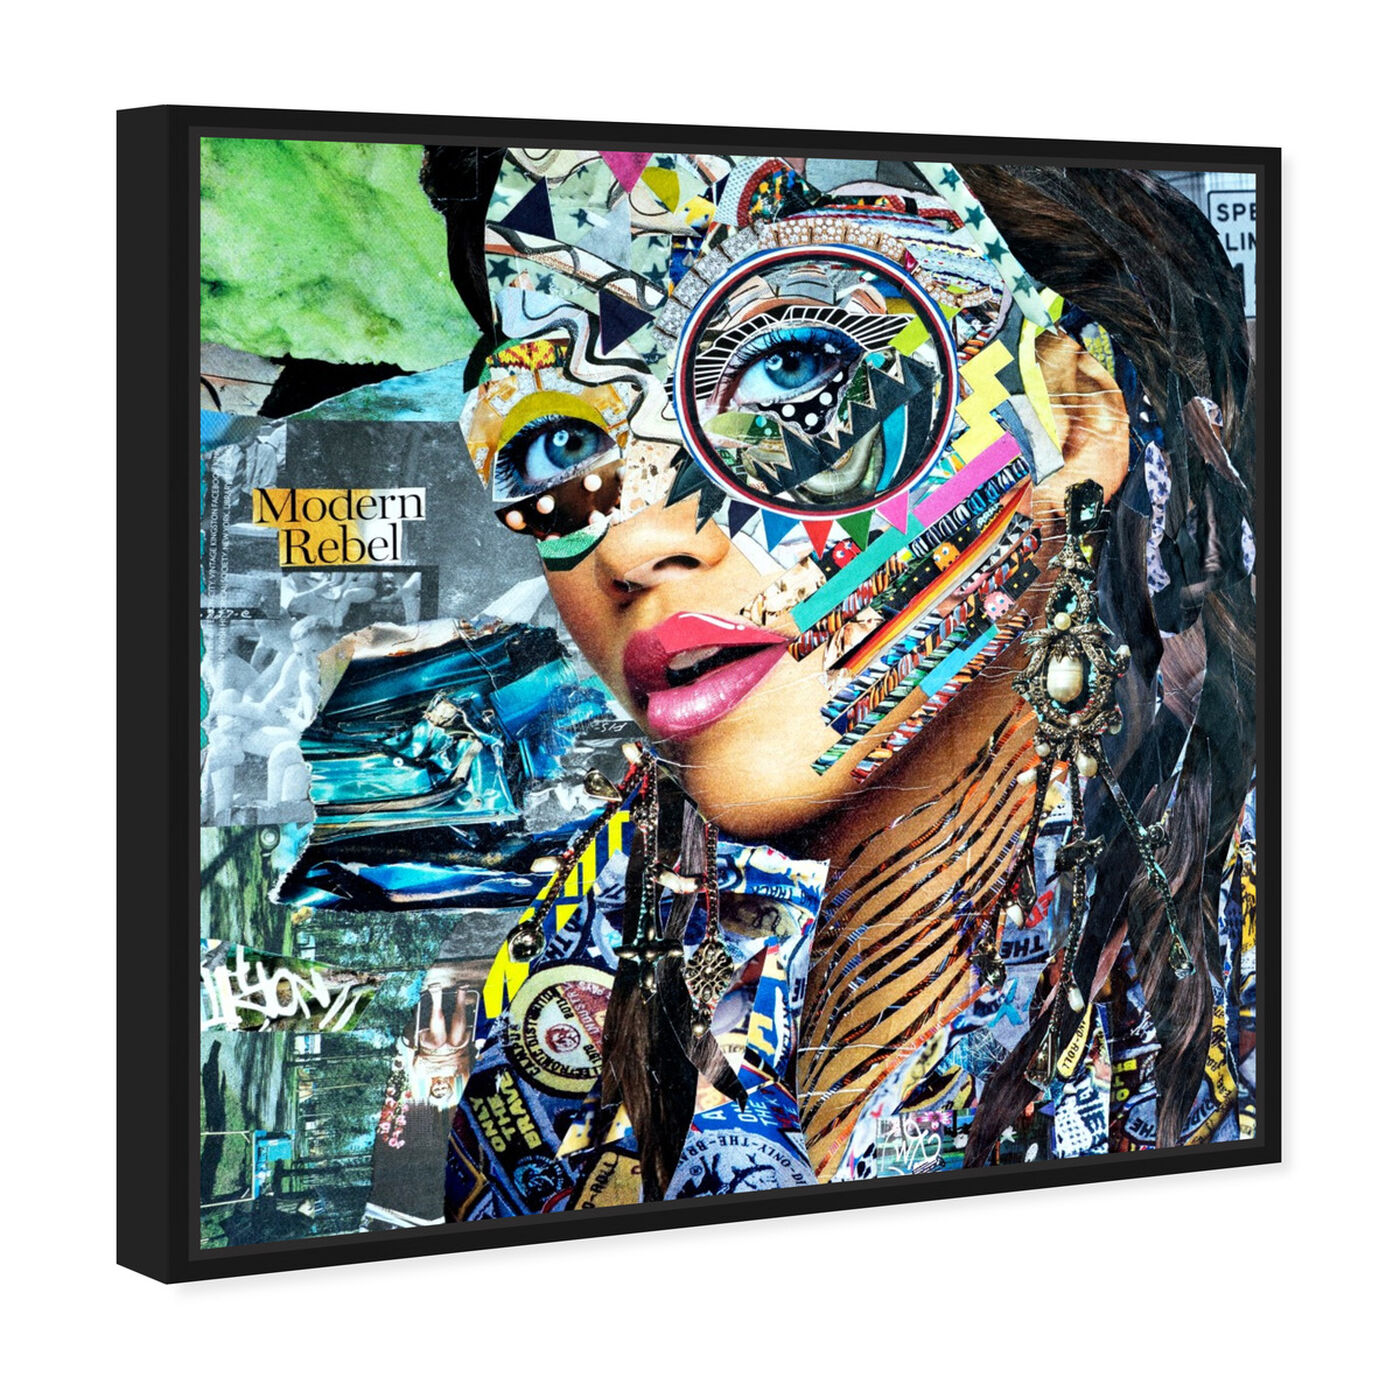 Angled view of ModernRebel by Katy Hirschfeld featuring fashion and glam and portraits art.